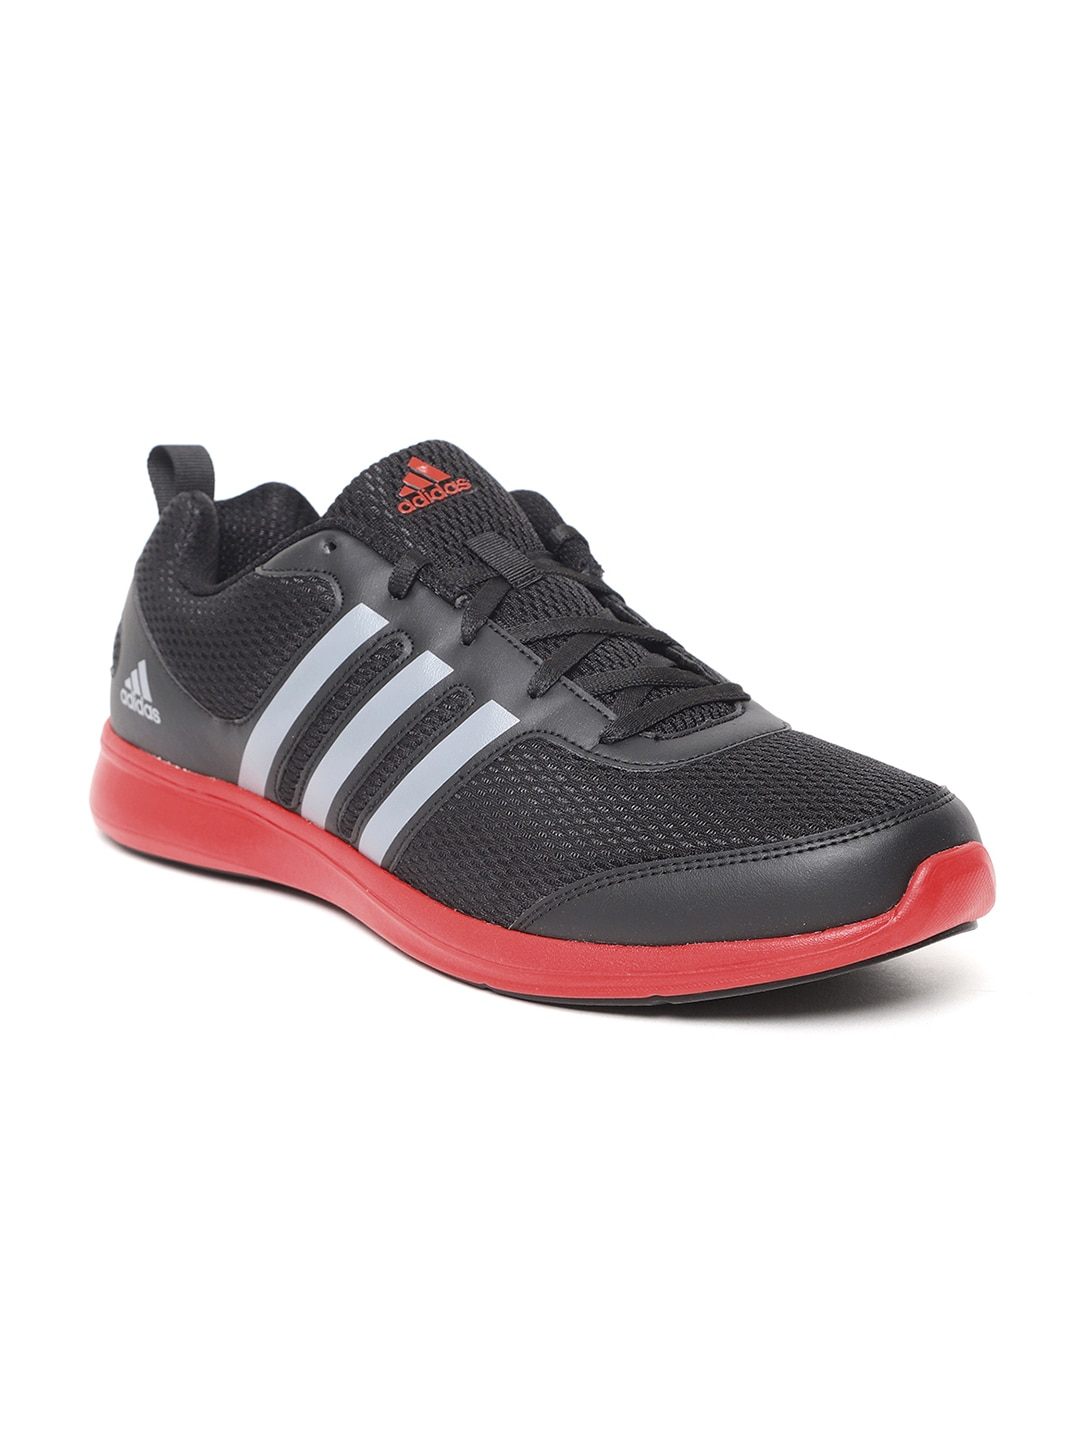 8d75dab25dfa Adidas Footwear Men Sports Shoes - Buy Adidas Footwear Men Sports Shoes  online in India